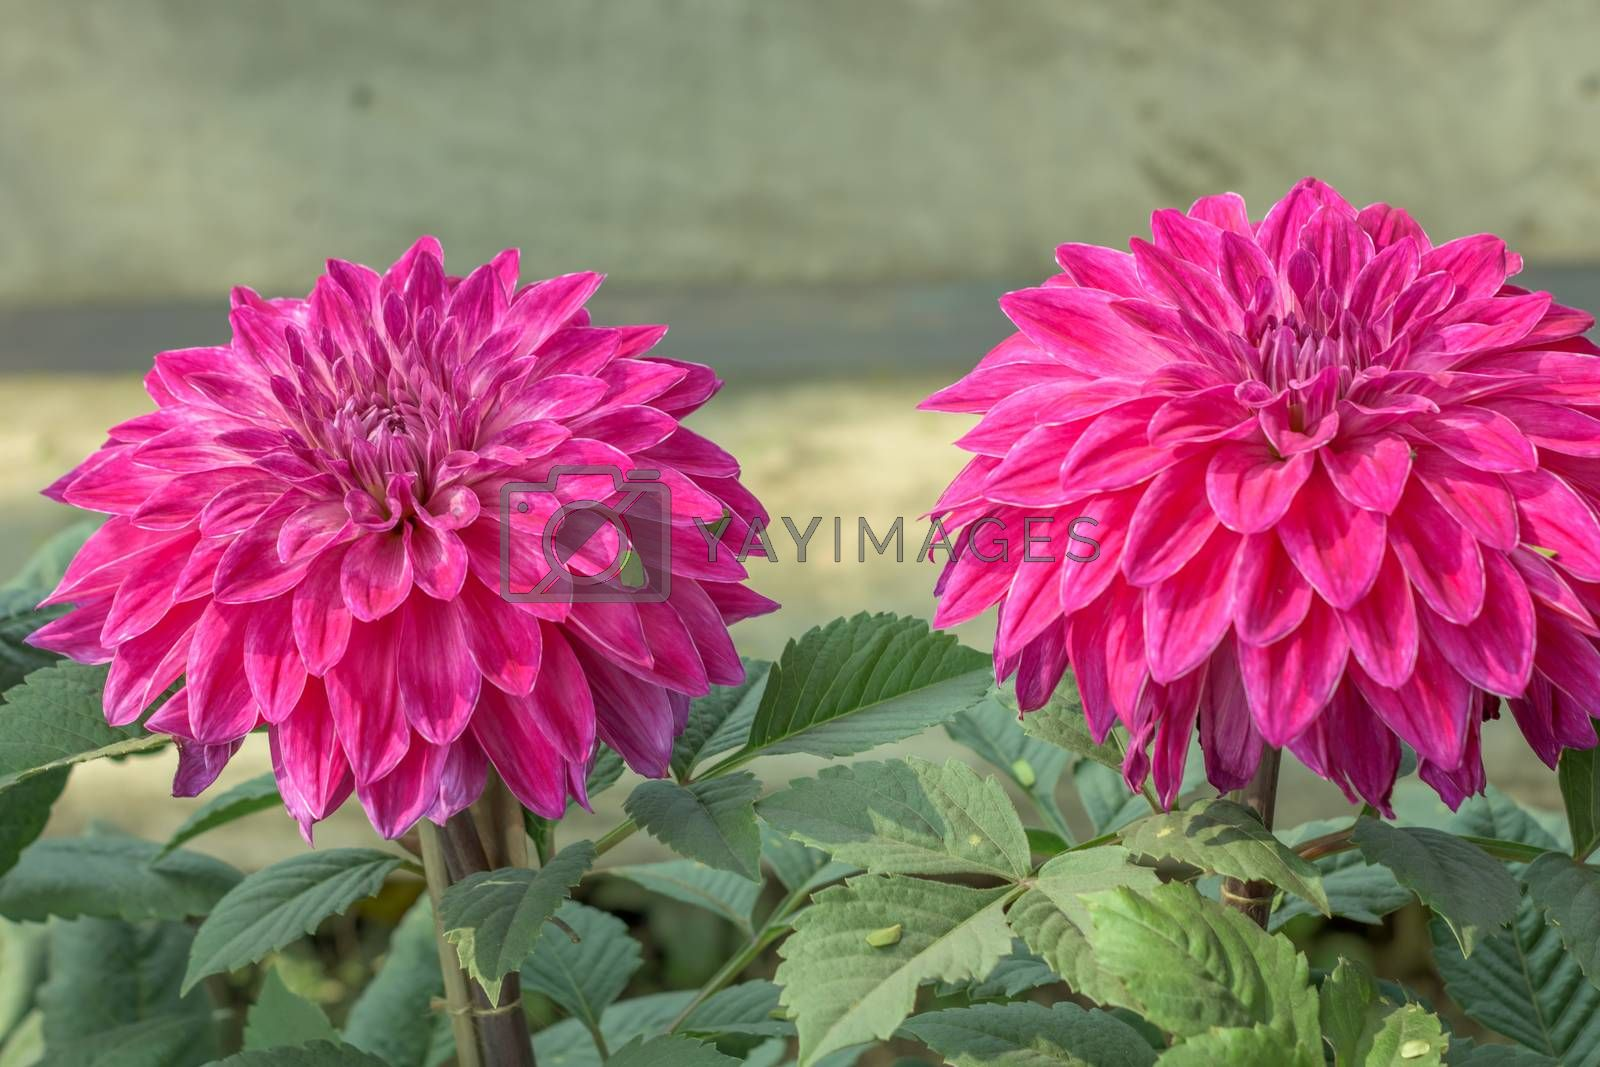 Pink Guldavari Flower plant, a herbaceous perennial plants. It is a sun loving plant Blooms in early spring to late summer. A very popular flower for gardens and bouquets. Copy space room text.